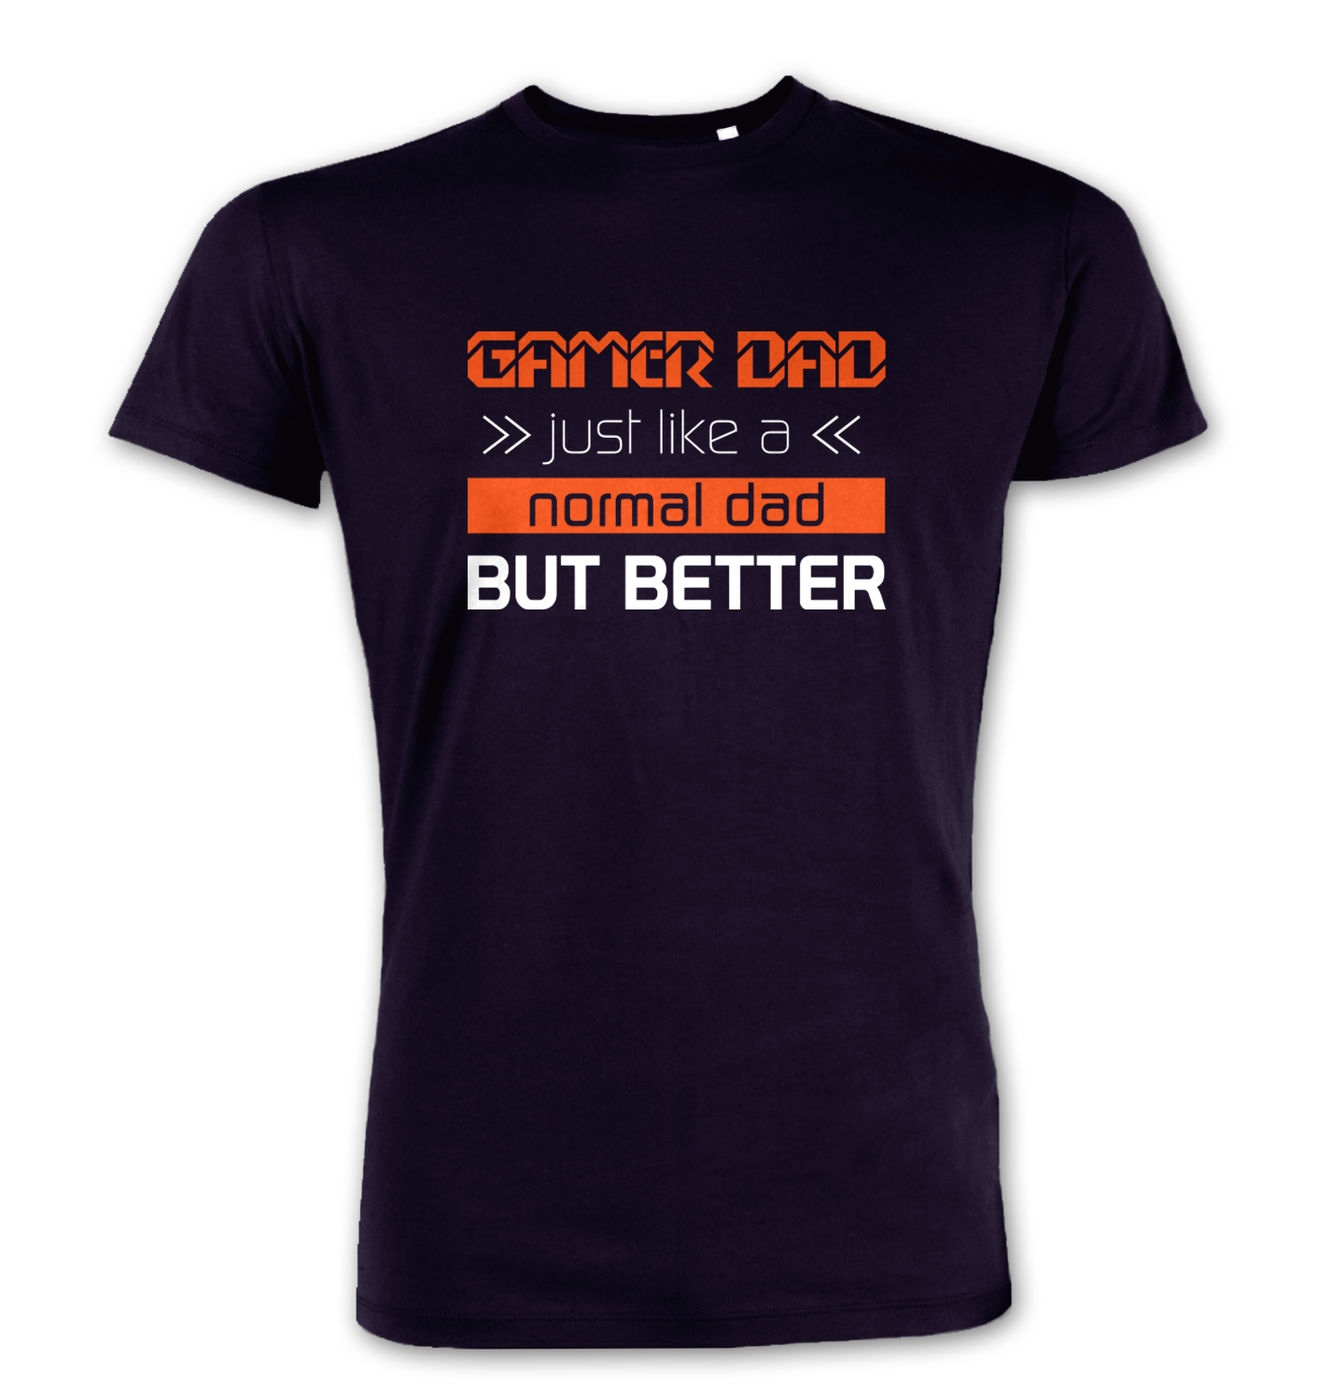 Gamer Dad premium t-shirt by Something Geeky